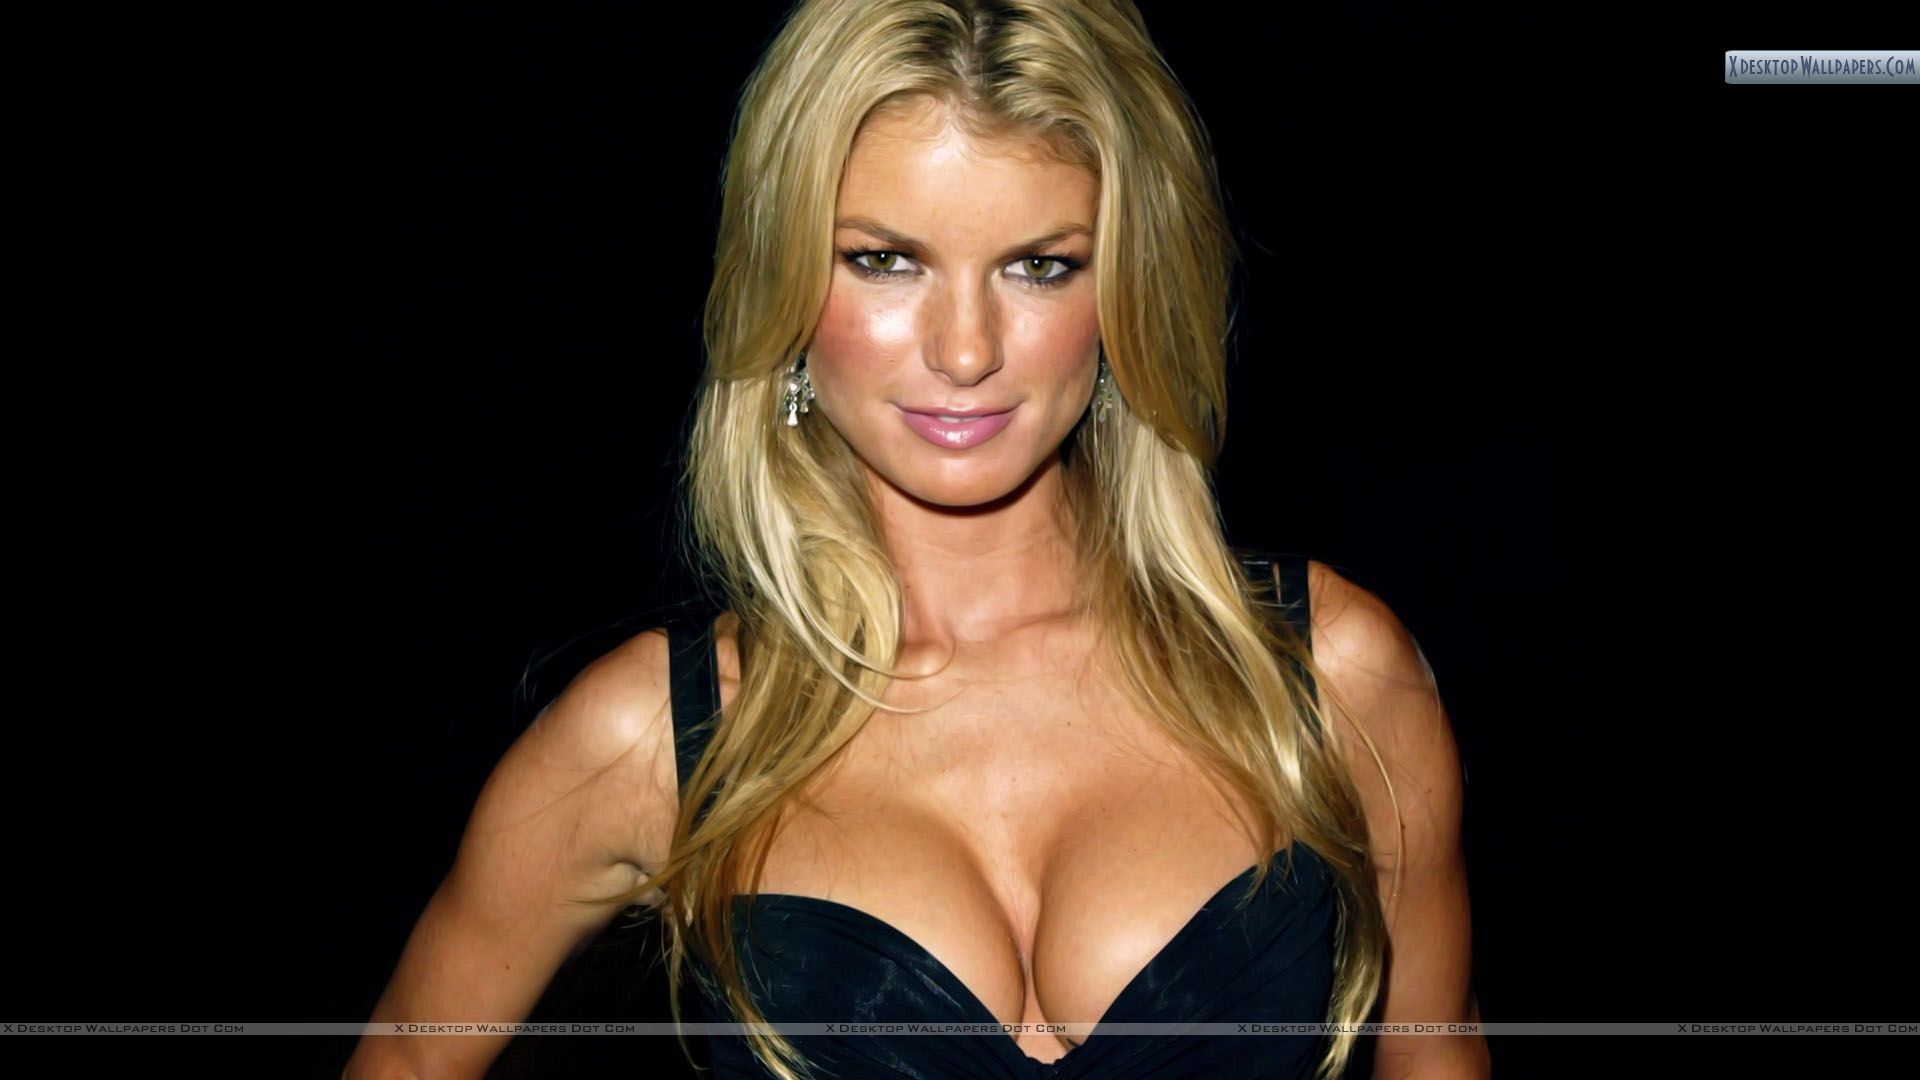 marisa miller in black top wallpaper